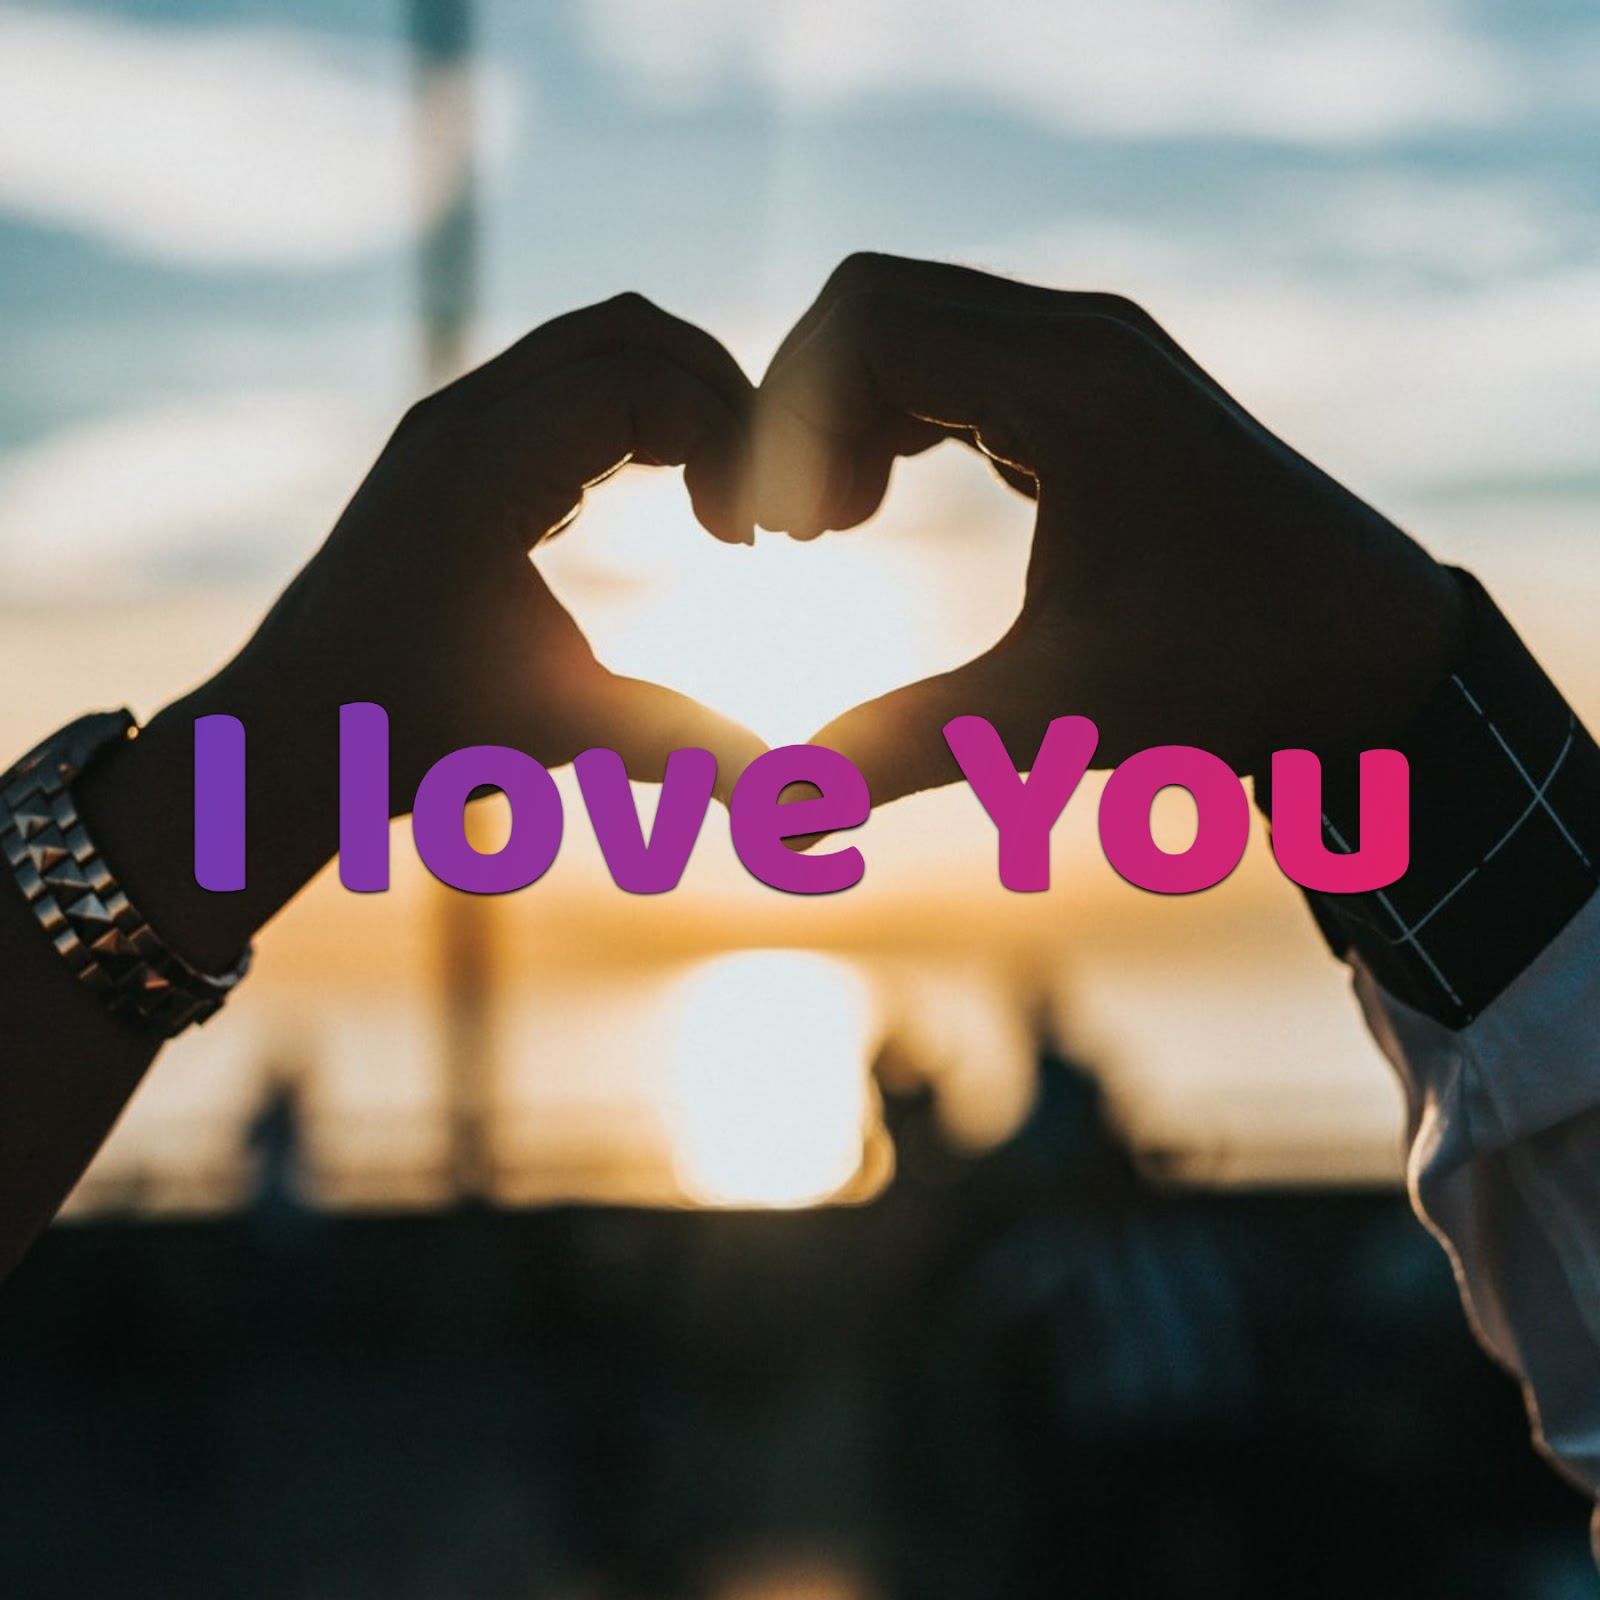 1000+ FOR LOVE IMAGES 2020 free download